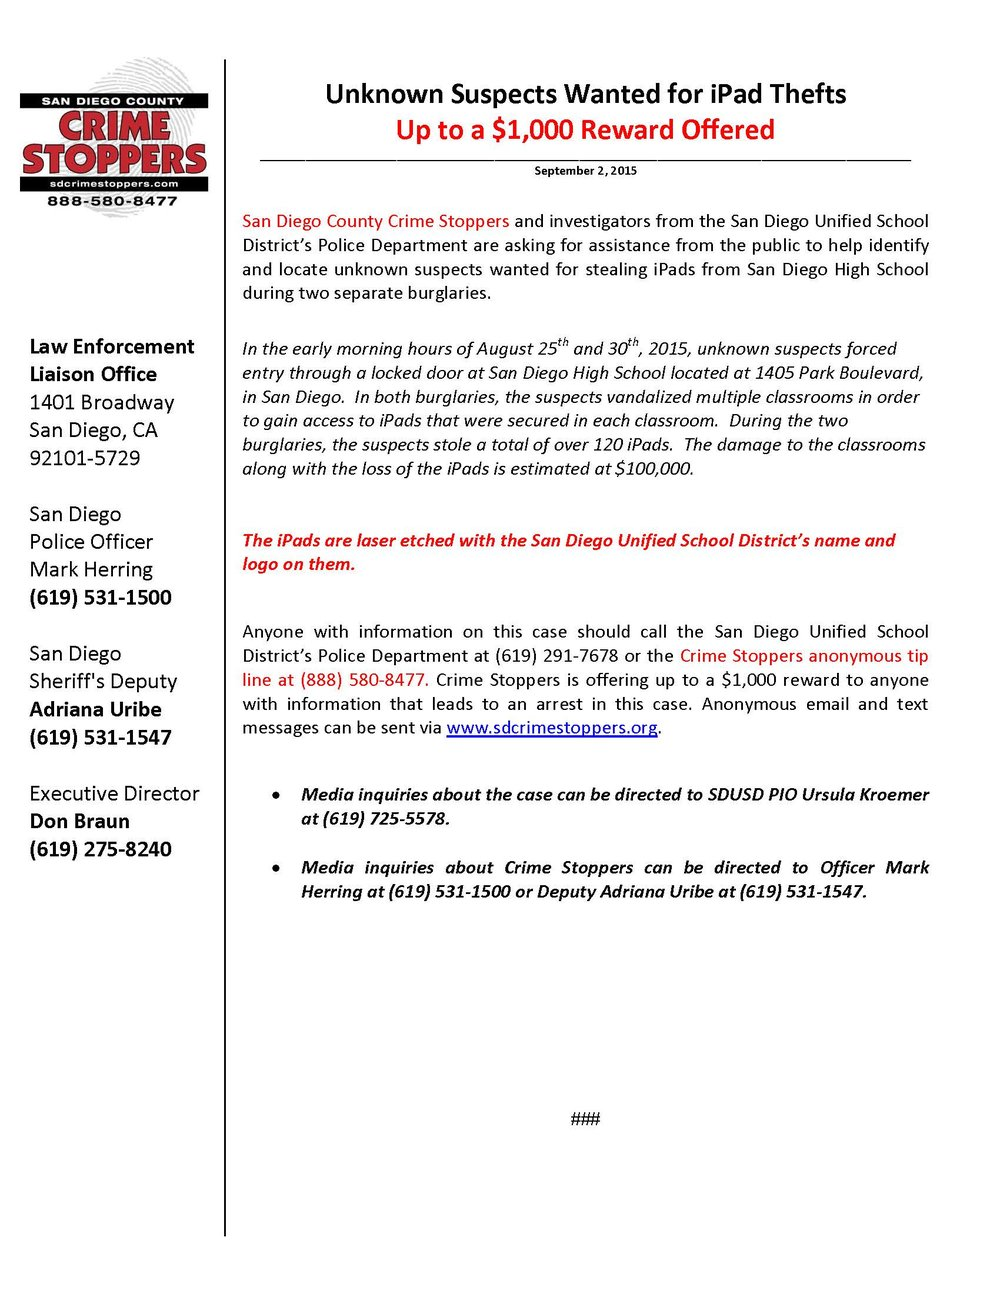 090215 San Diego High School iPad Thefts